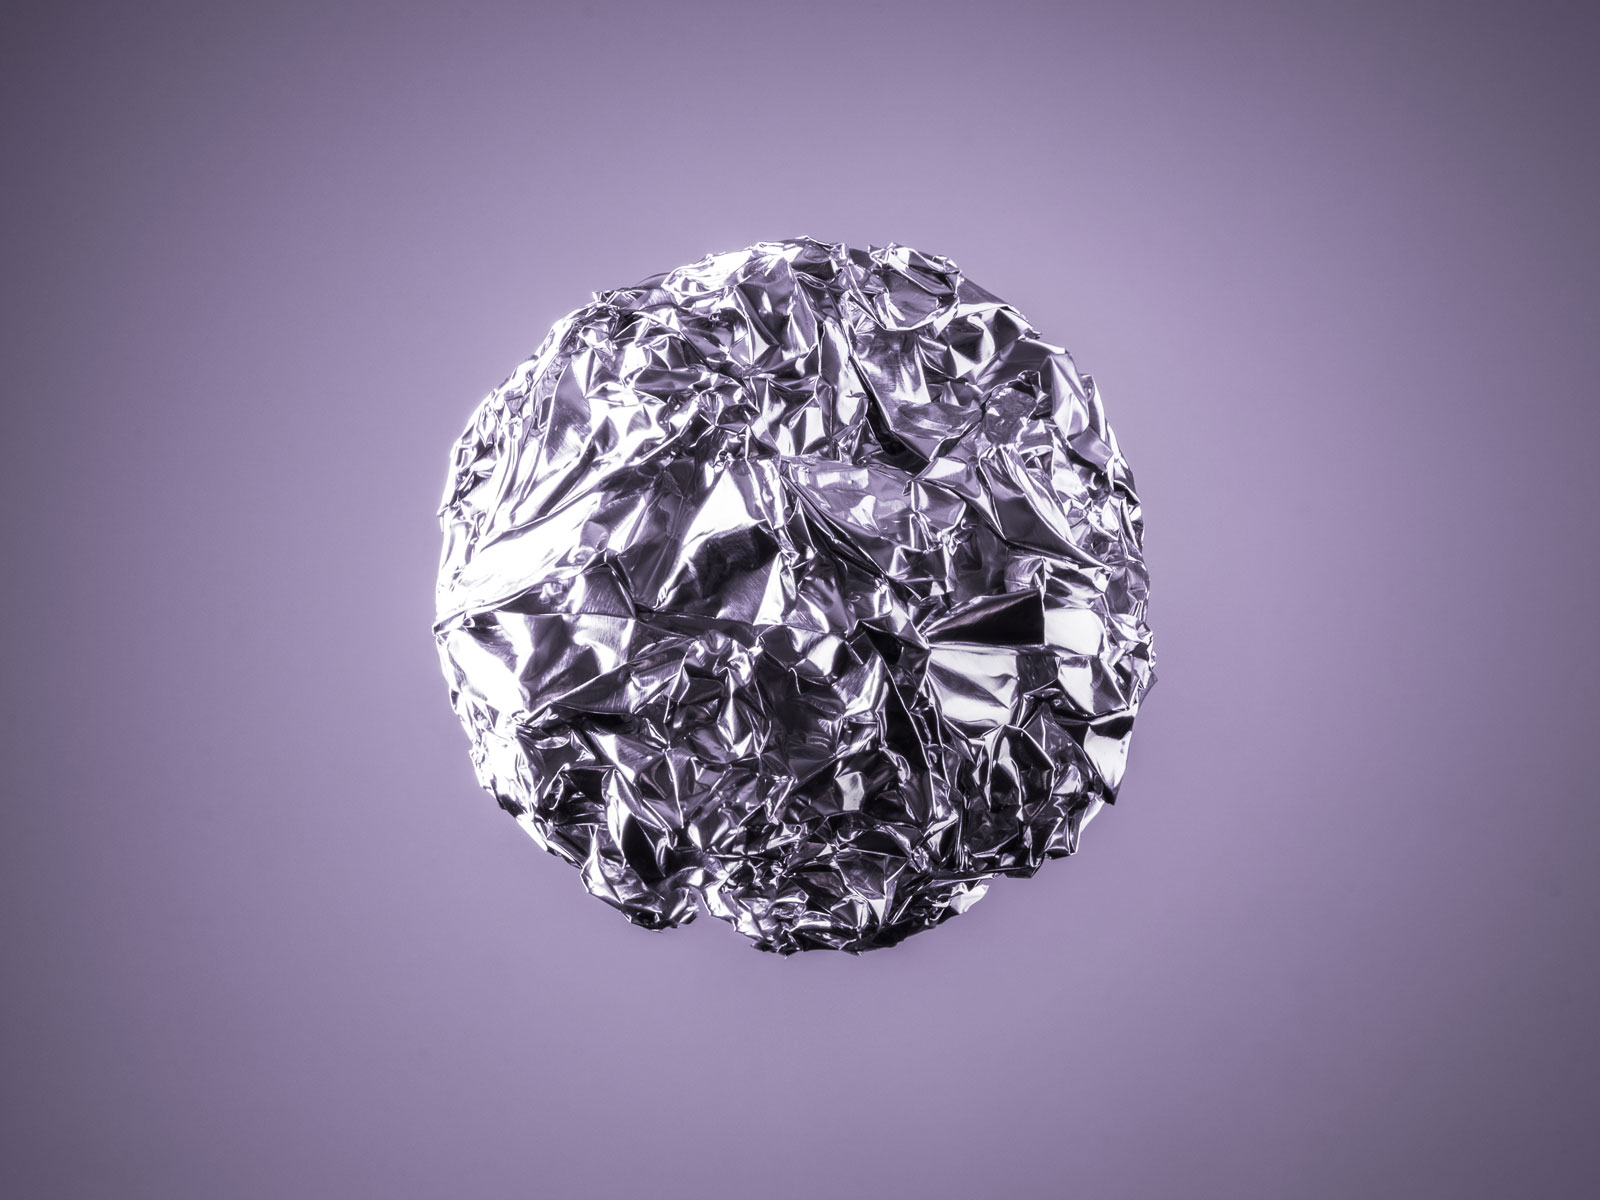 aluminum-foil-ball-FT-BLOG0418.jpg